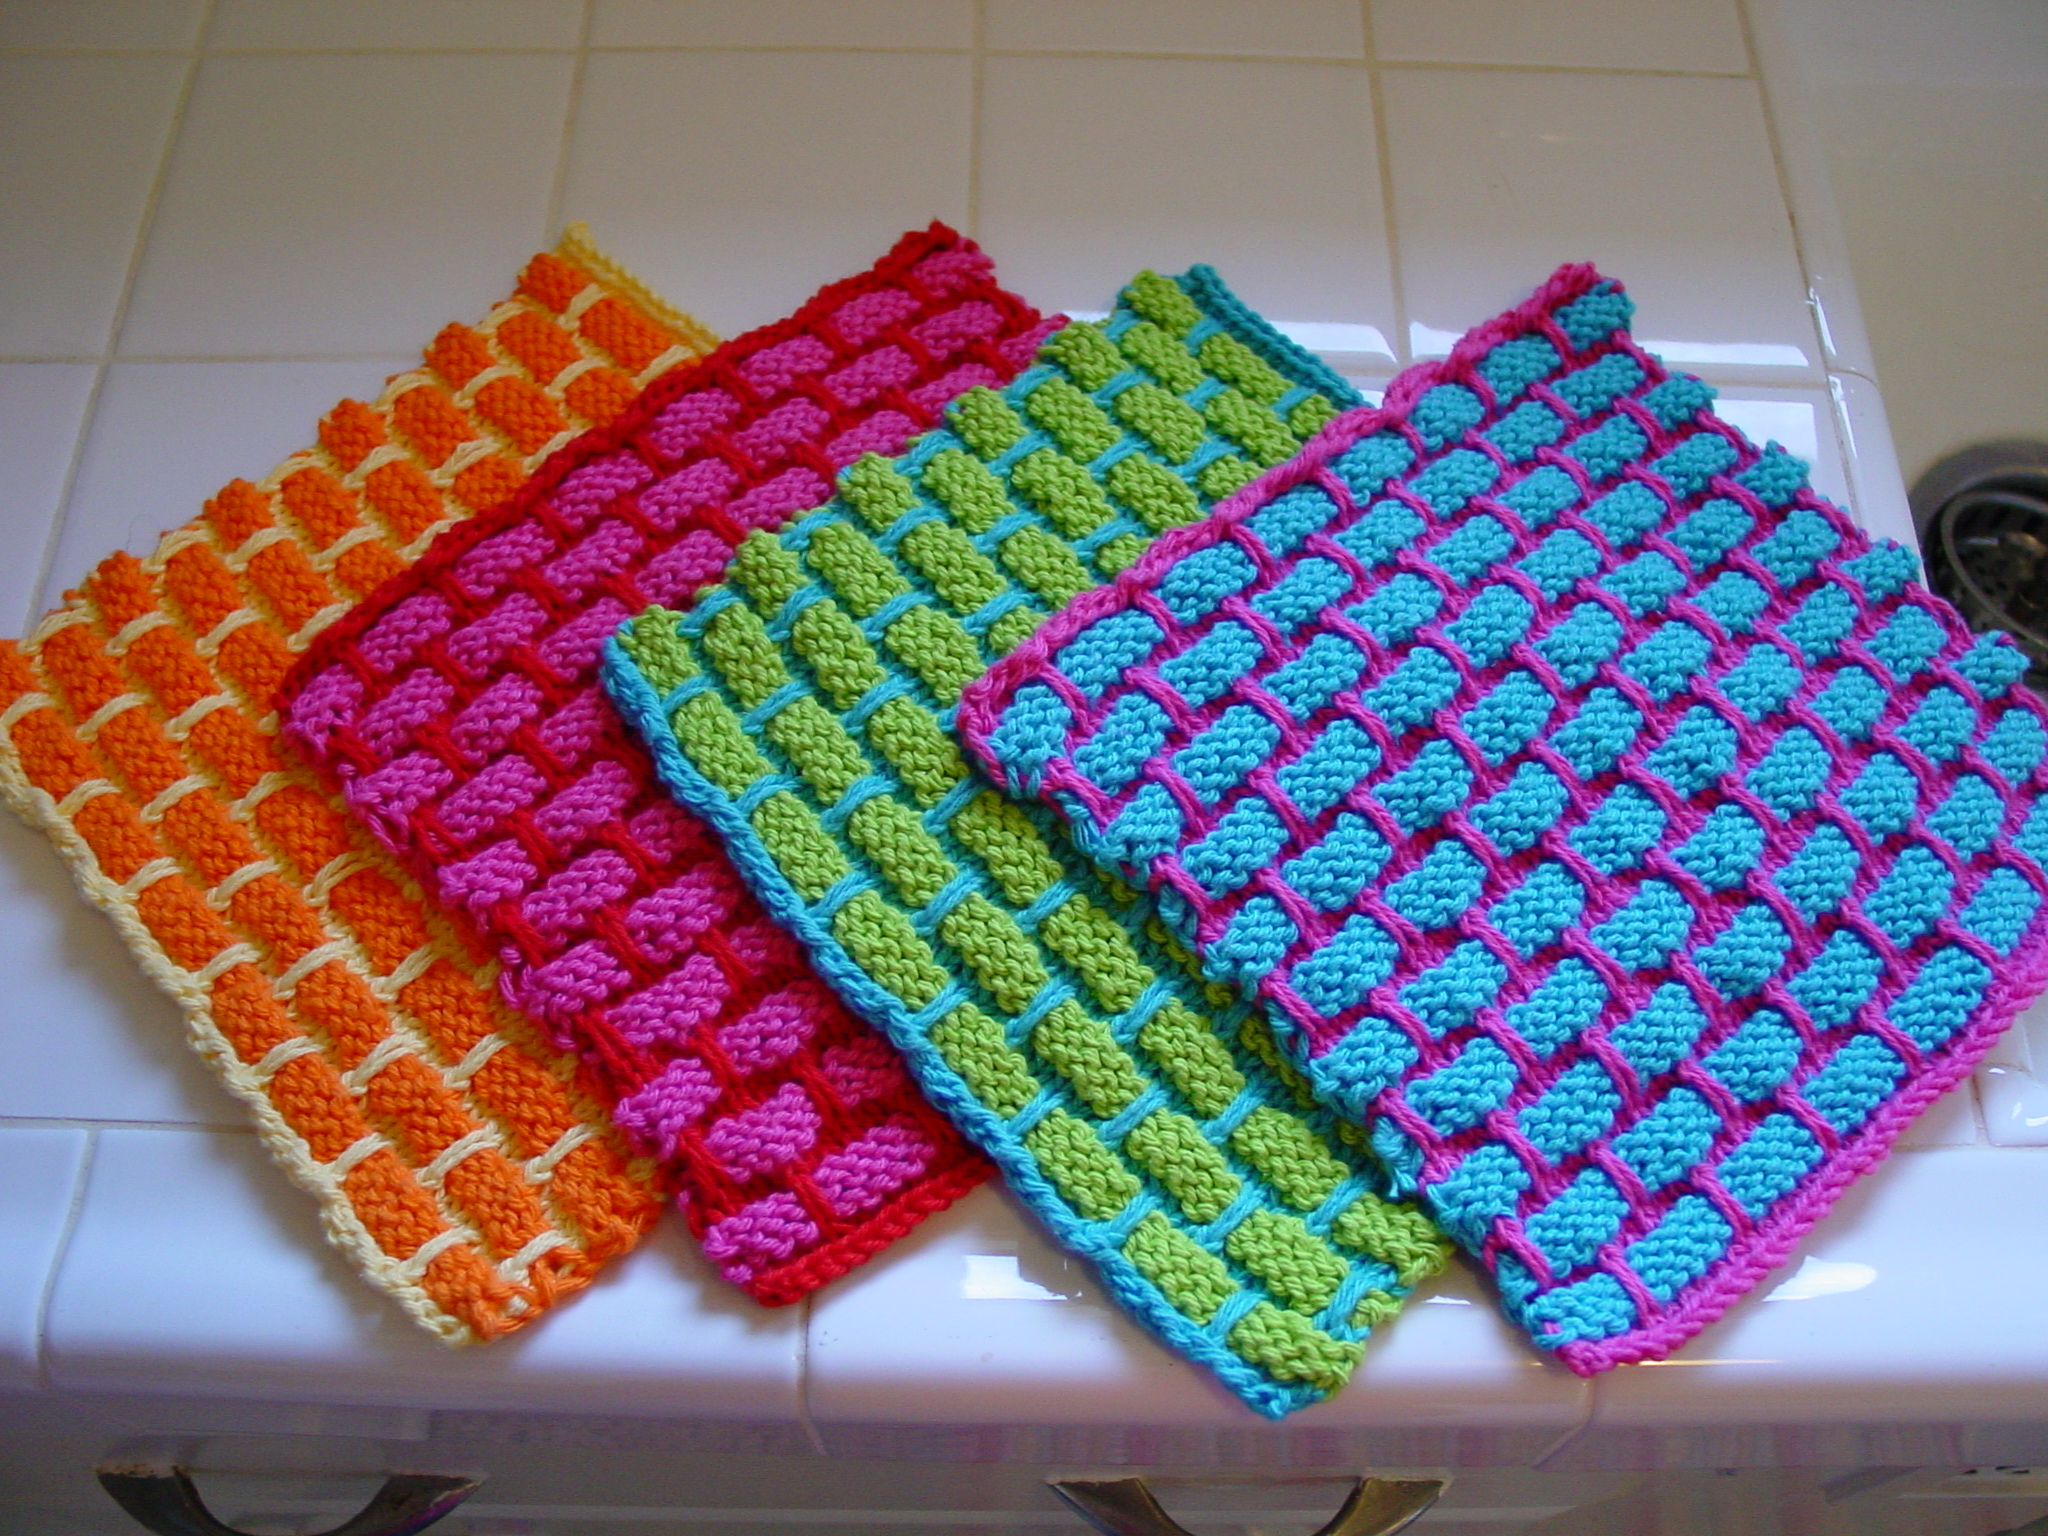 Knit Dishcloth Pattern Free : File:Dishcloths.jpg - Wikimedia Commons